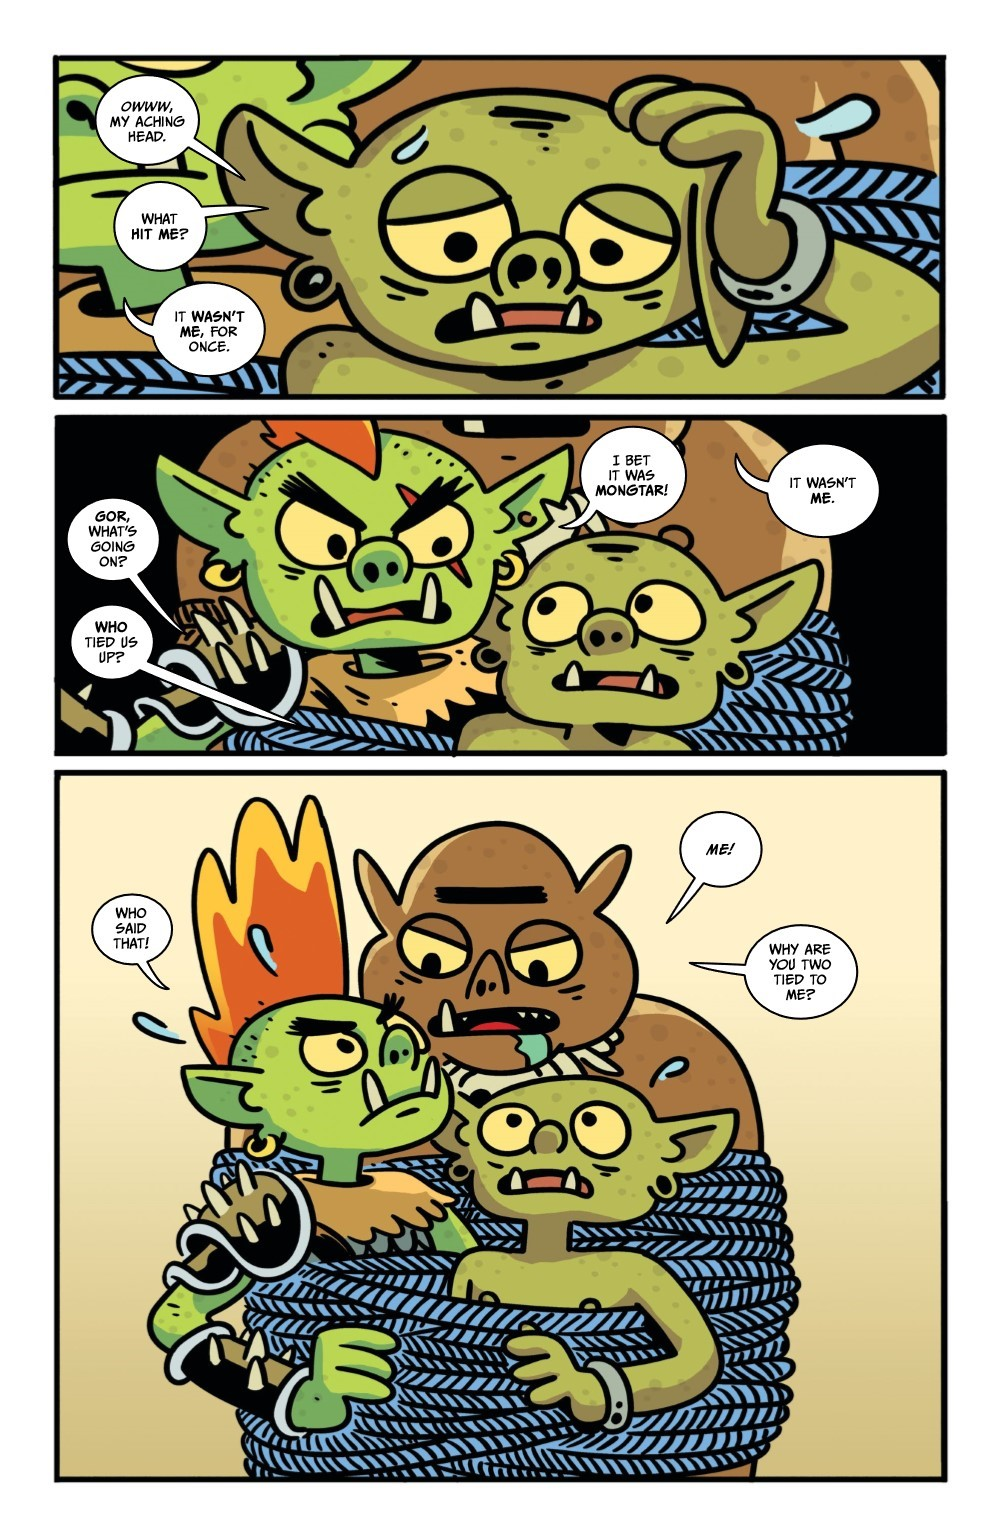 ORCSINSPACE-3-REFERENCE-07 ComicList Previews: ORCS IN SPACE #3